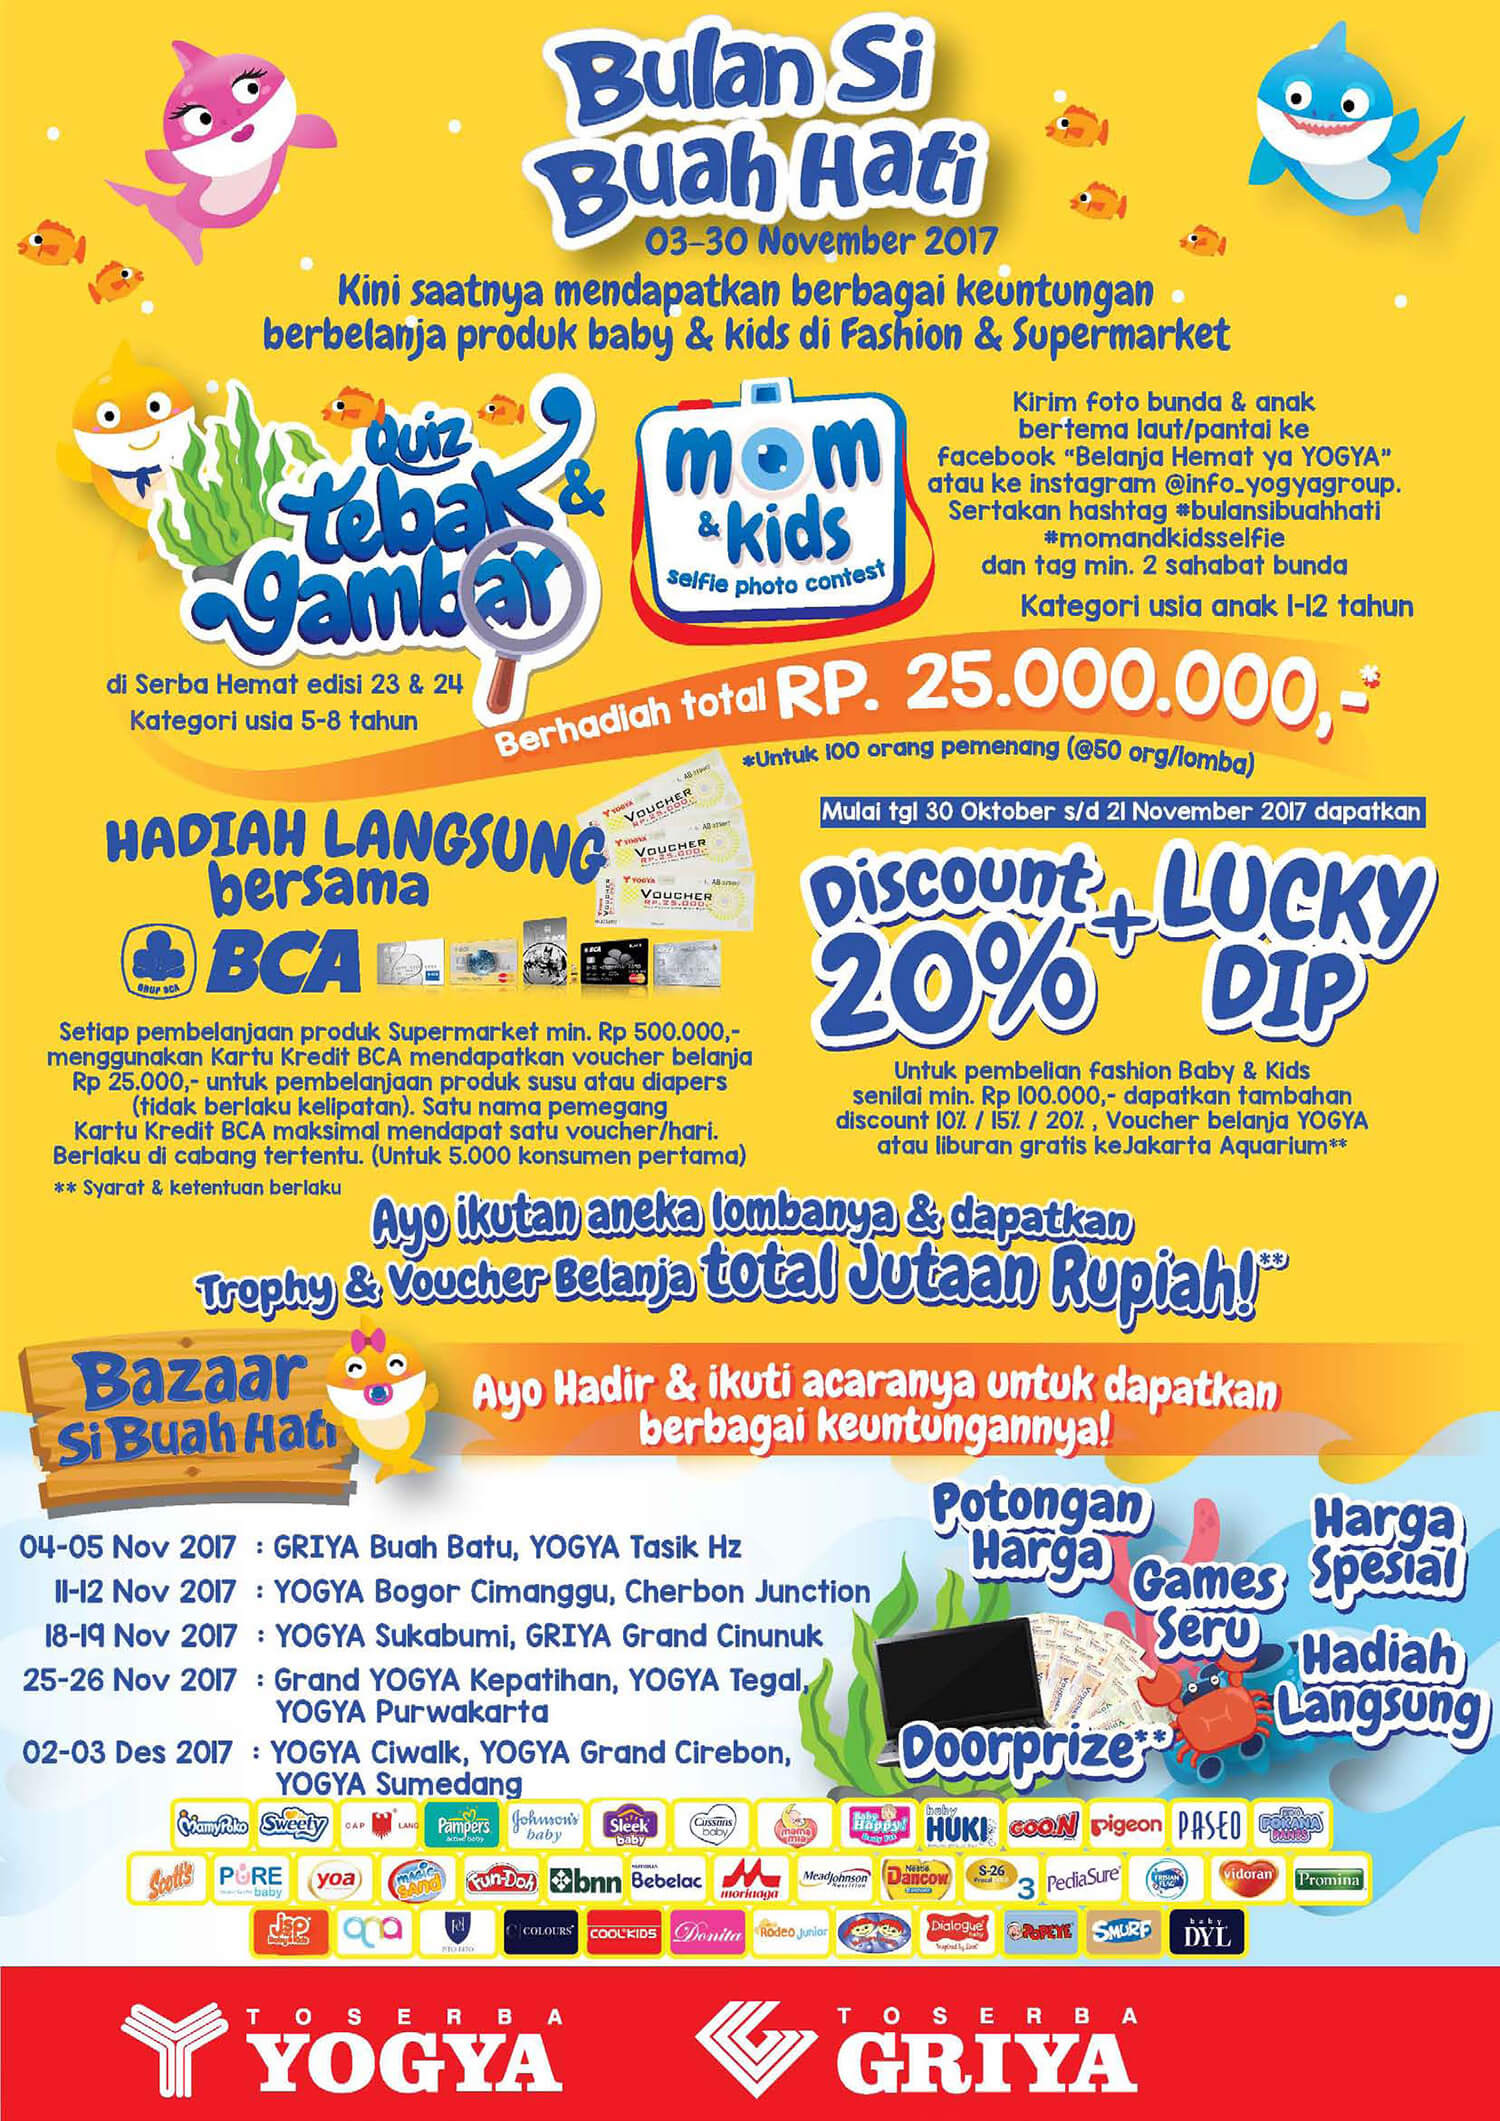 Indomaret Voucher Rp 10000005 Daftar Harga Terkini Dan Terlengkap Tcash Vaganza 26 Dancow 3 Madu 800gr Easier Purchase At The Convenience Stores Source Type To Search Item In This Catalogue